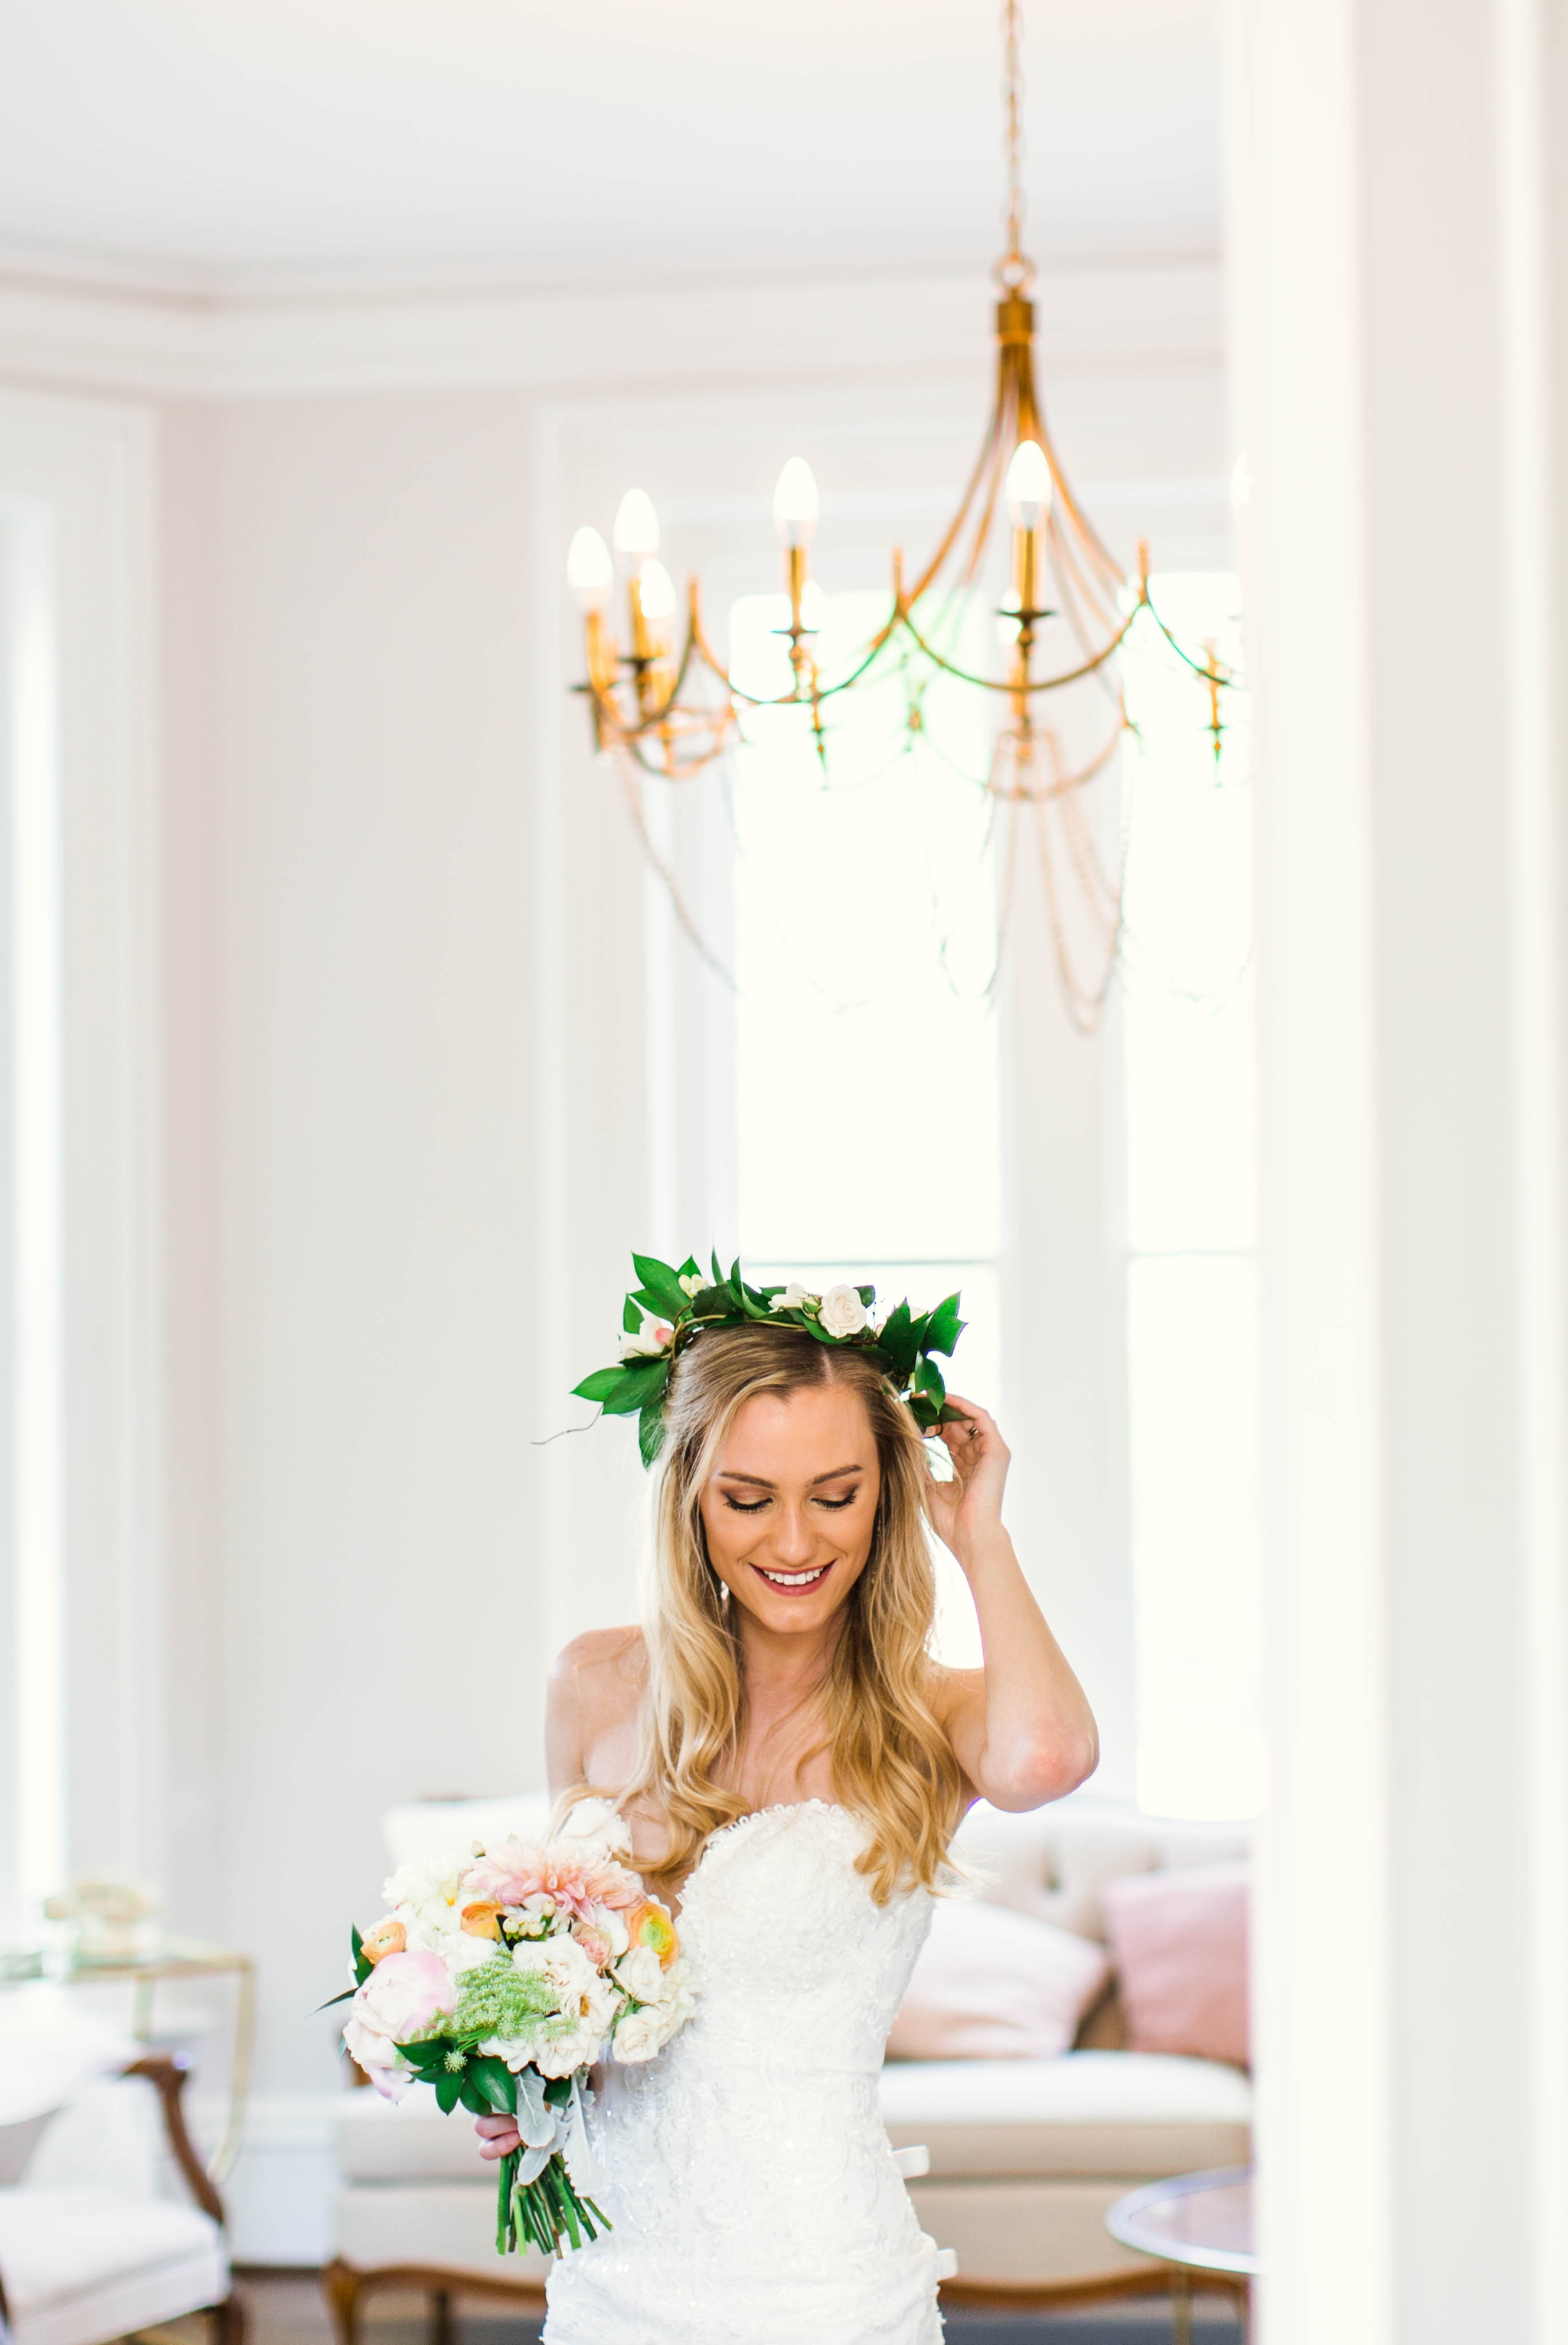 Indoor Bridal Portraits in an all white room at a luxury estate with natural light before the ceremony - Bride is wearing a Hawaiian Flower Crown in a Wedding Gown by Stella York and standing in the doorway with a golden chandelier with vintage furniture in the background - Honolulu Oahu Hawaii Wedding Photographer - Johanna Dye Photography